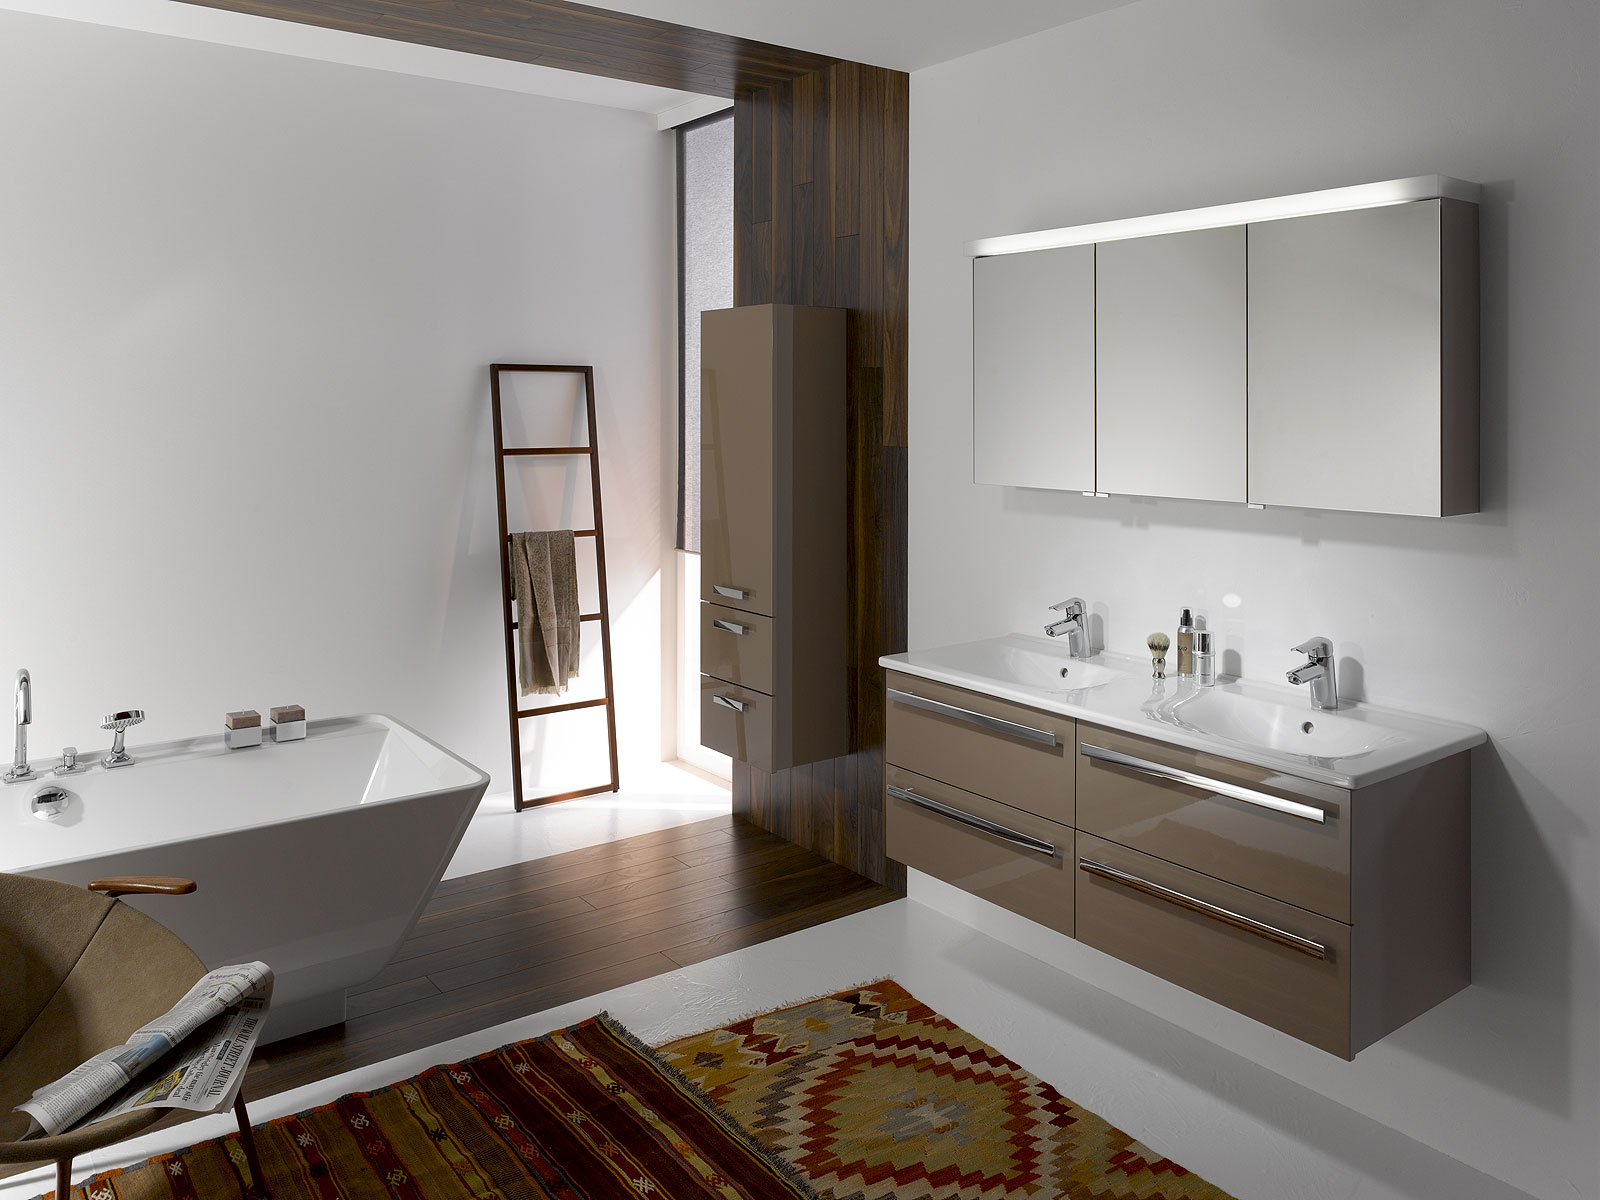 Modern bathroom decor accessories - Modern Bathroom Interior Design Wallpapers